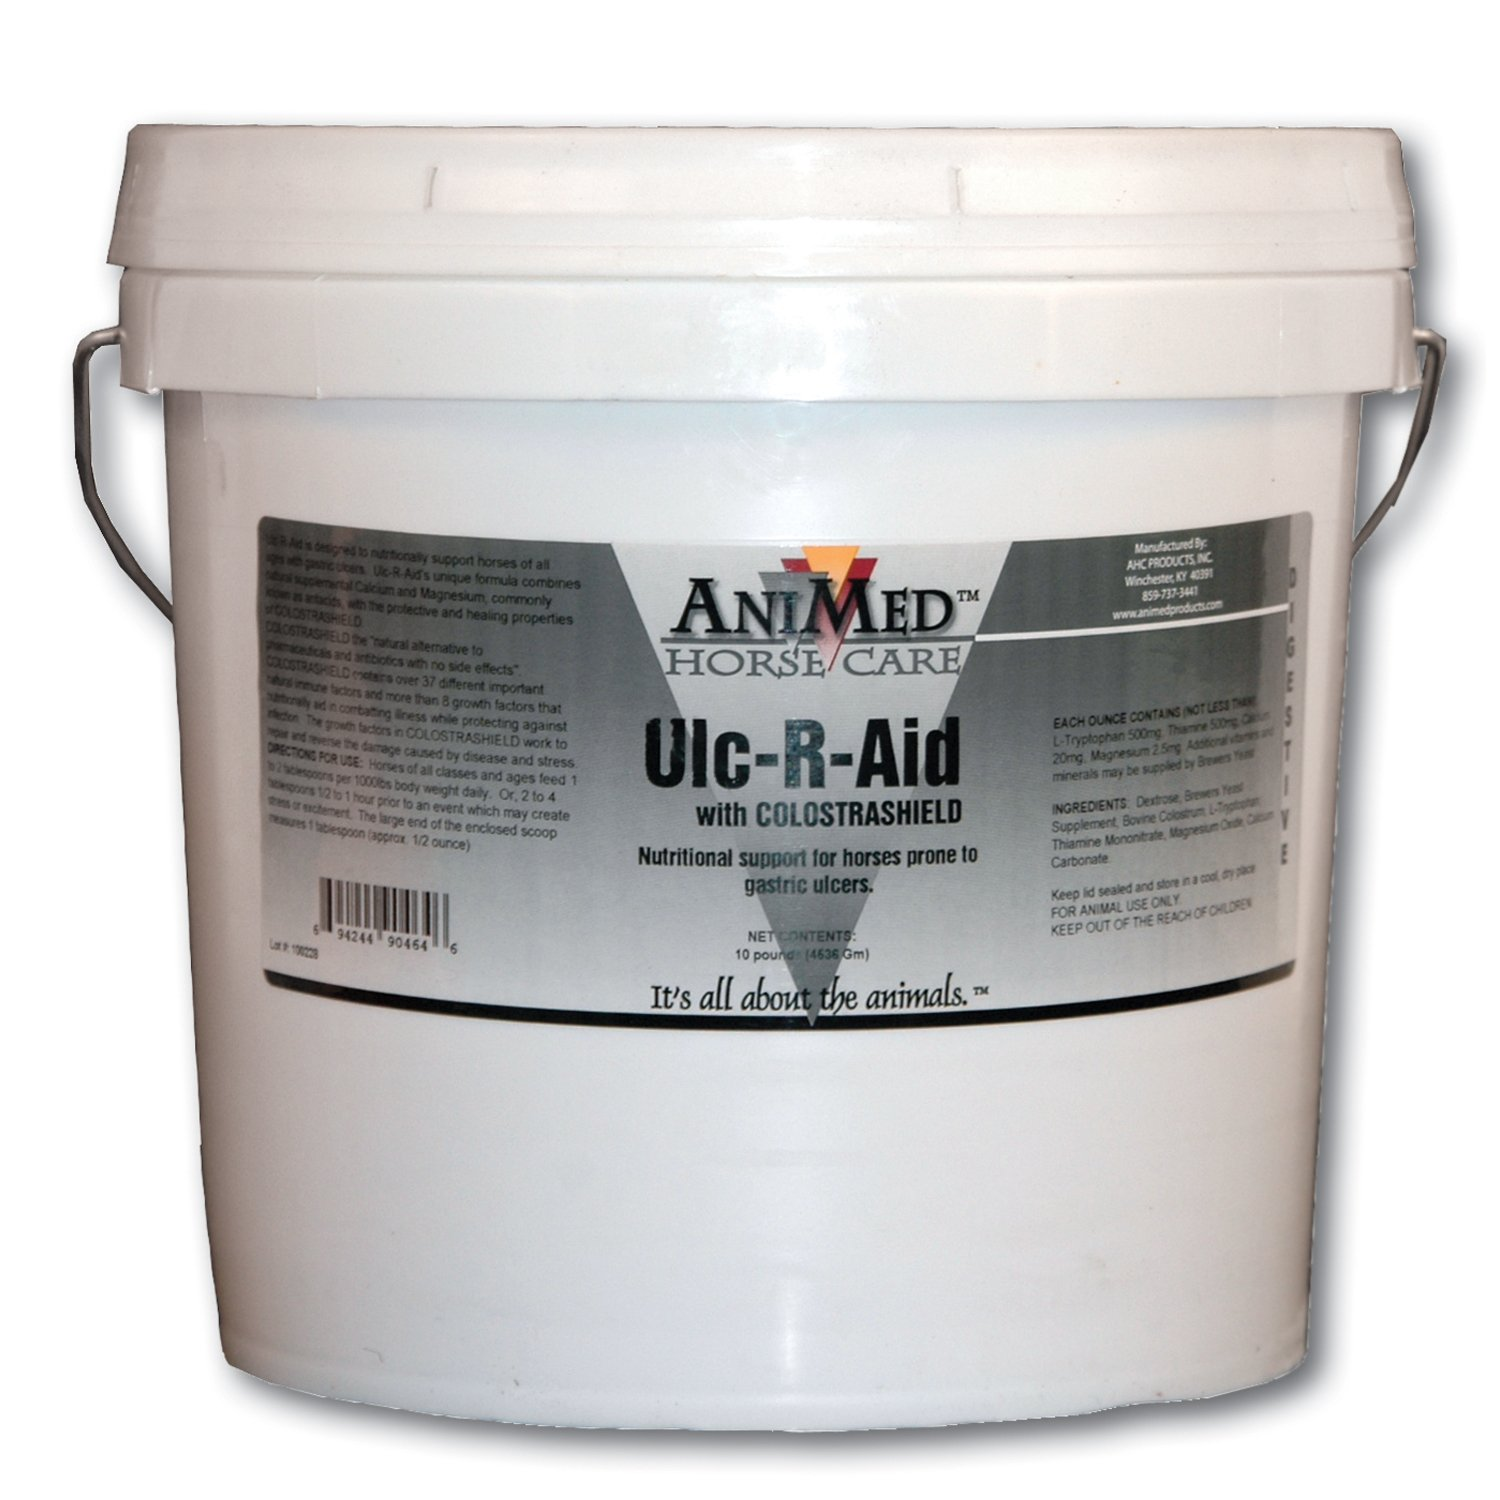 AniMed Ulc-R-Aid Nutritional Supplement for Horses, 10-Pound by AniMed